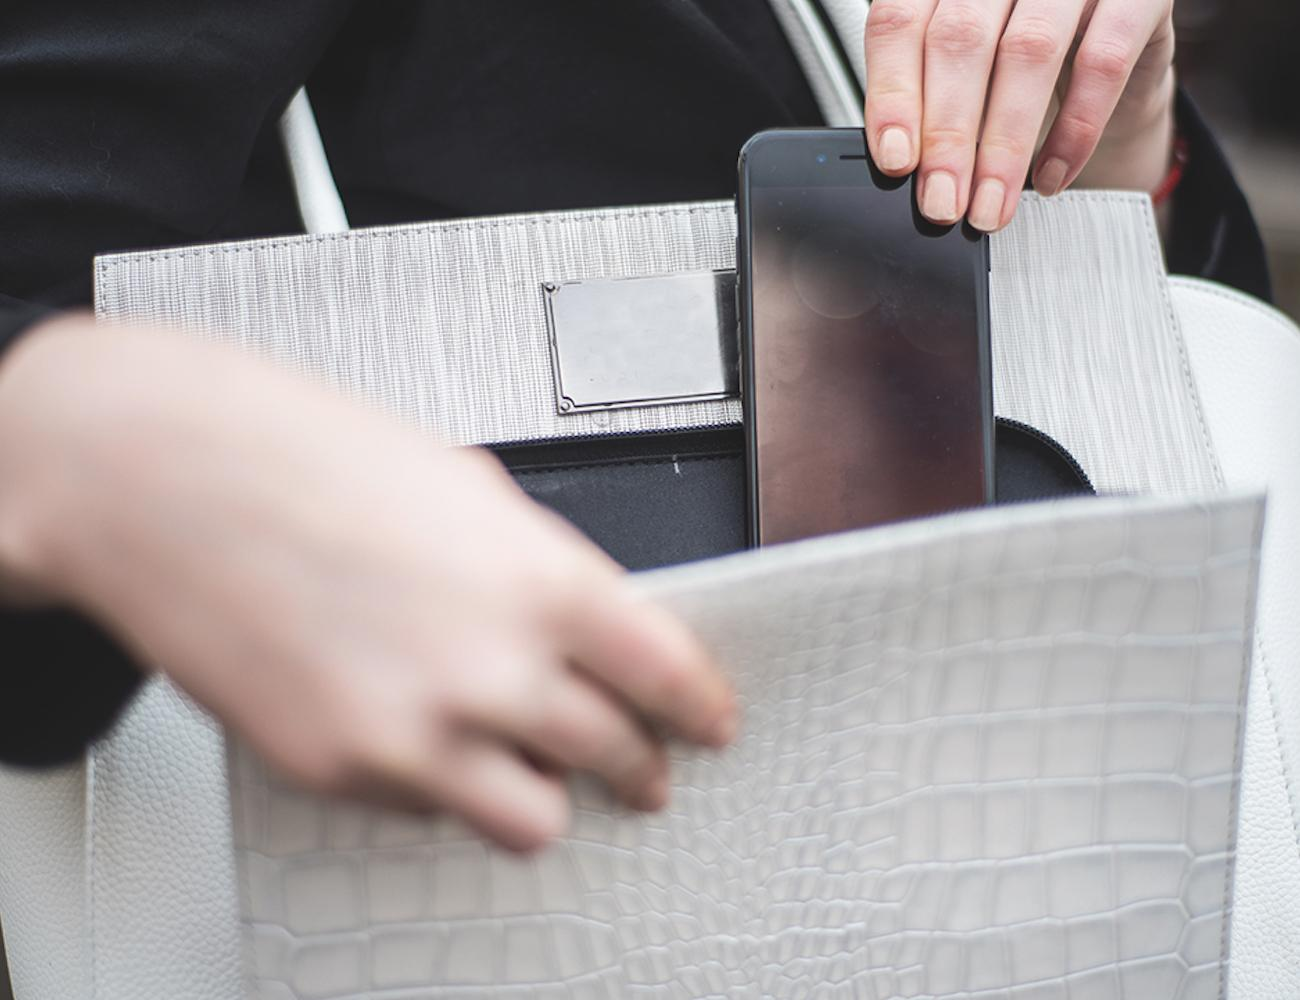 SMART Connected Luxury Handbag